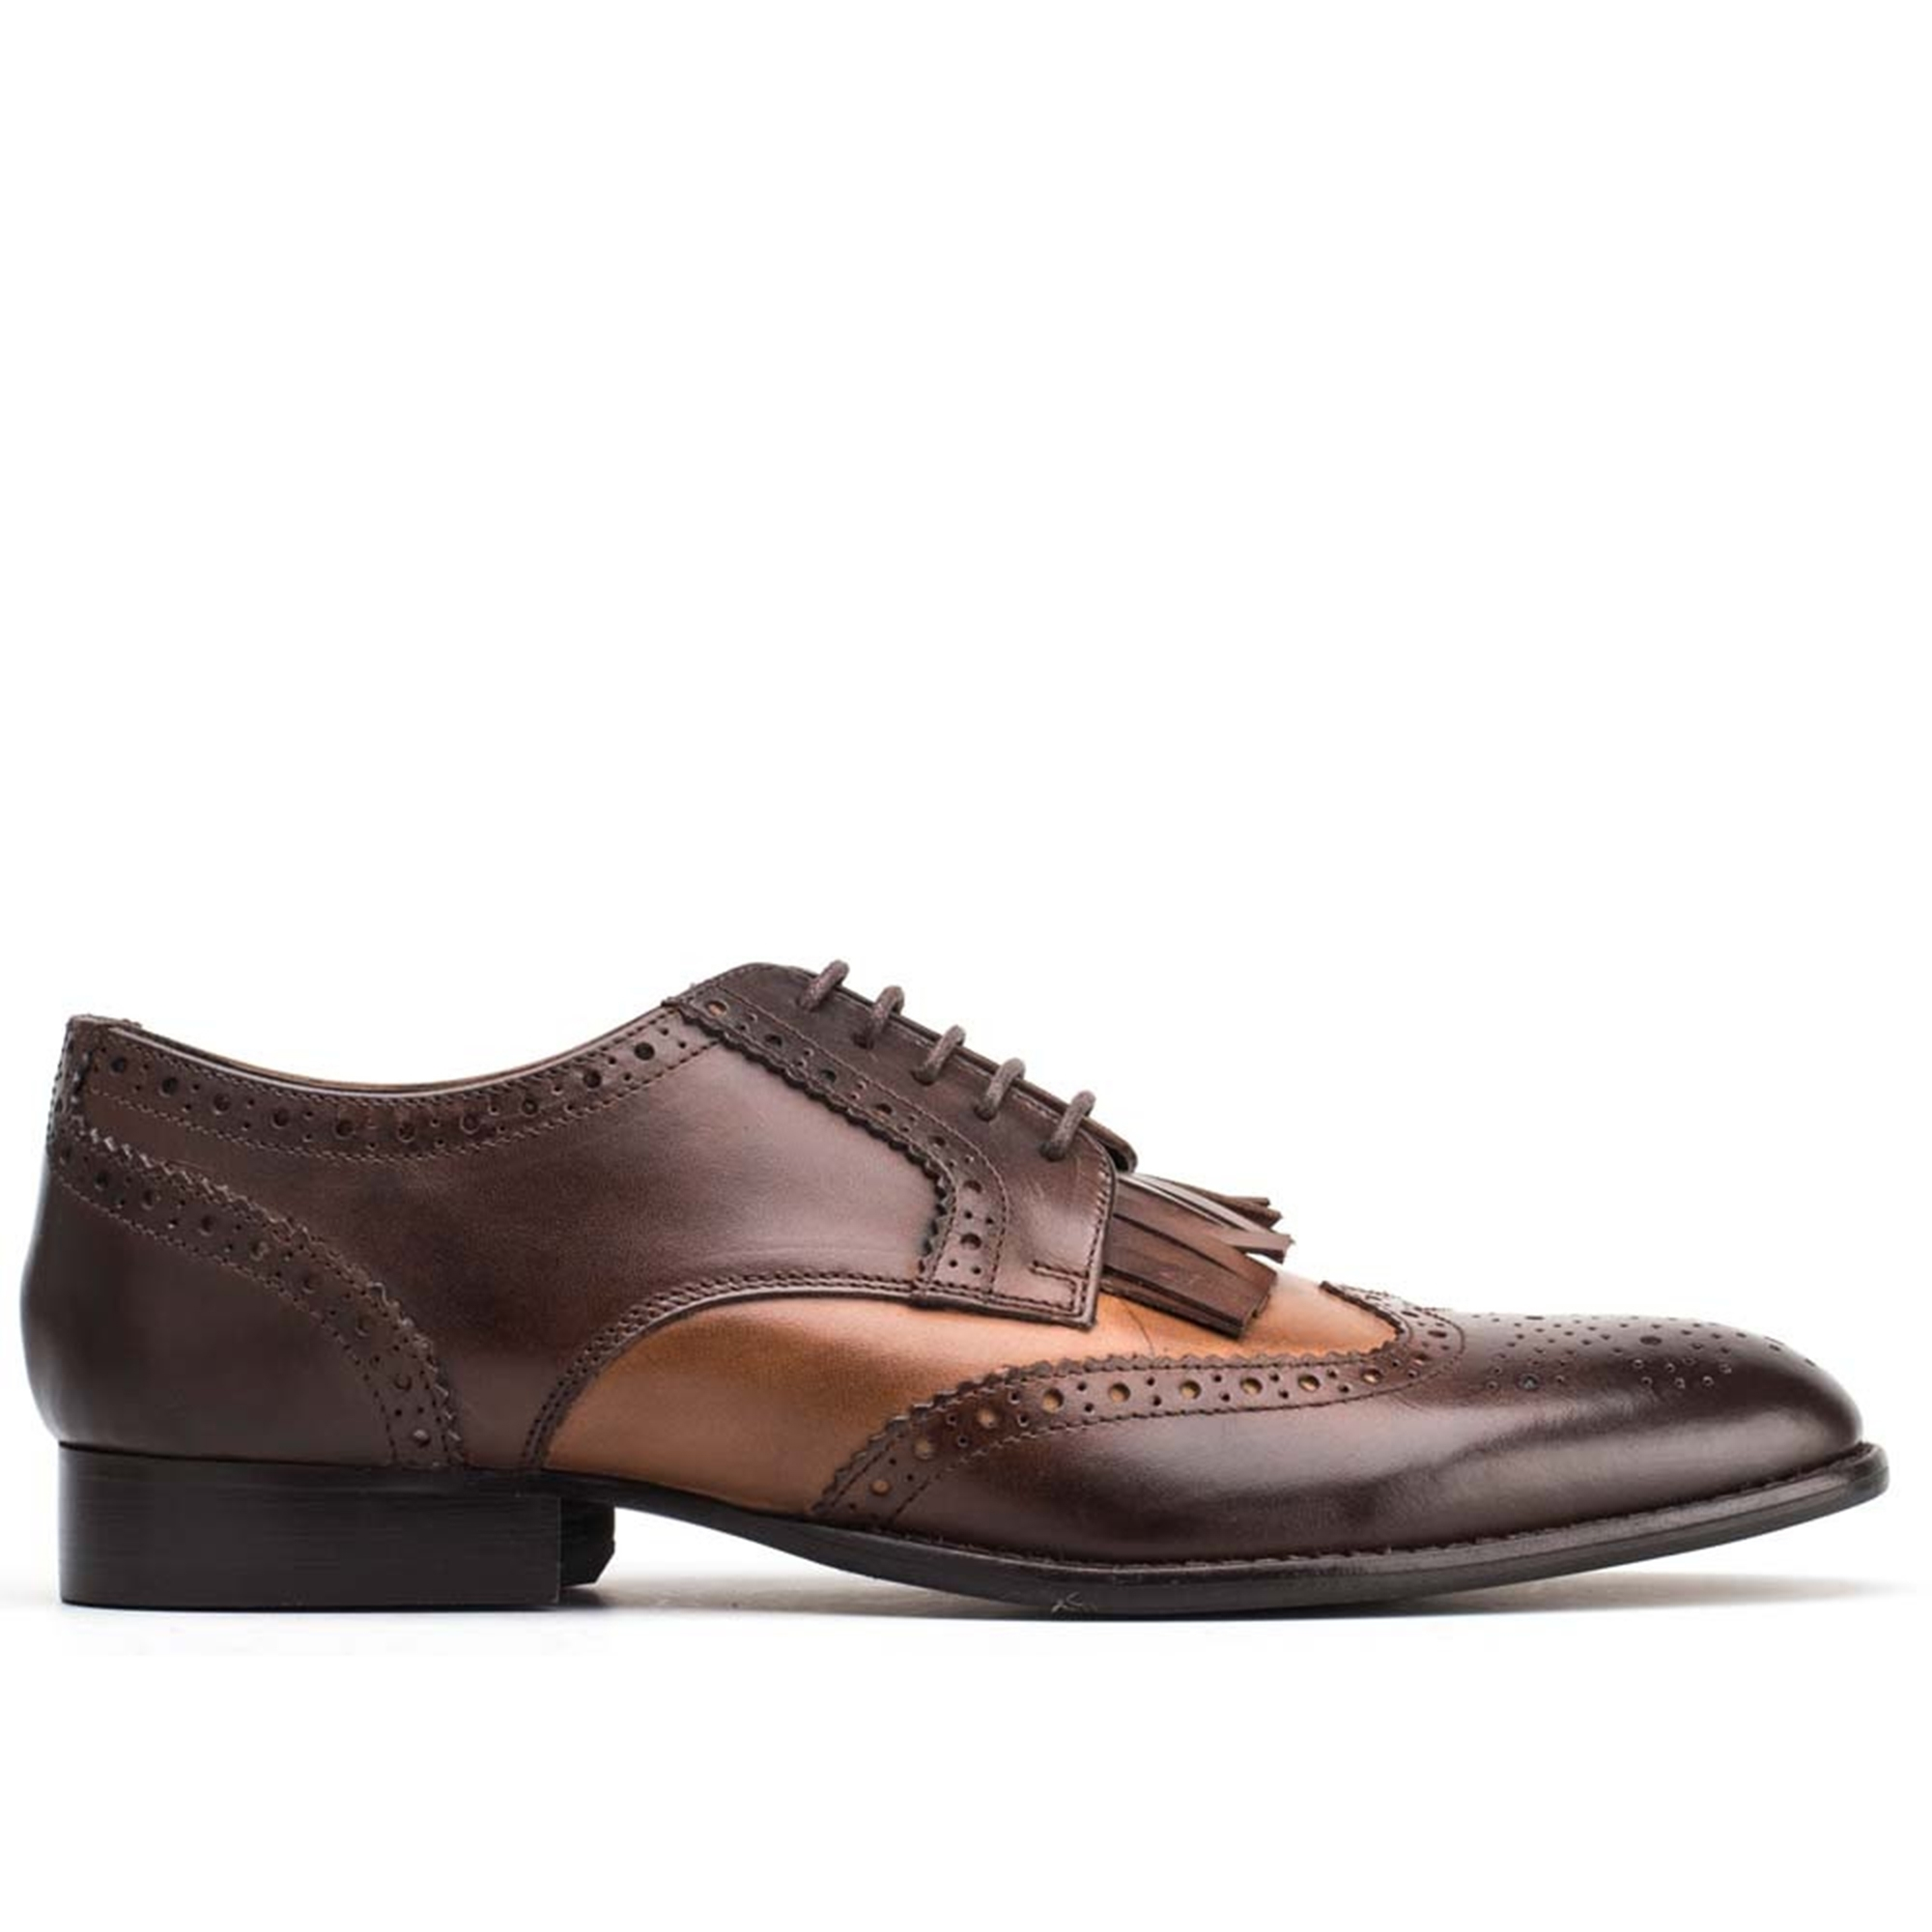 867a3cb1f34 Base London BARTLEY BROGUE Mens Burnished Leather Lace Up Shoes Tan/Cocoa